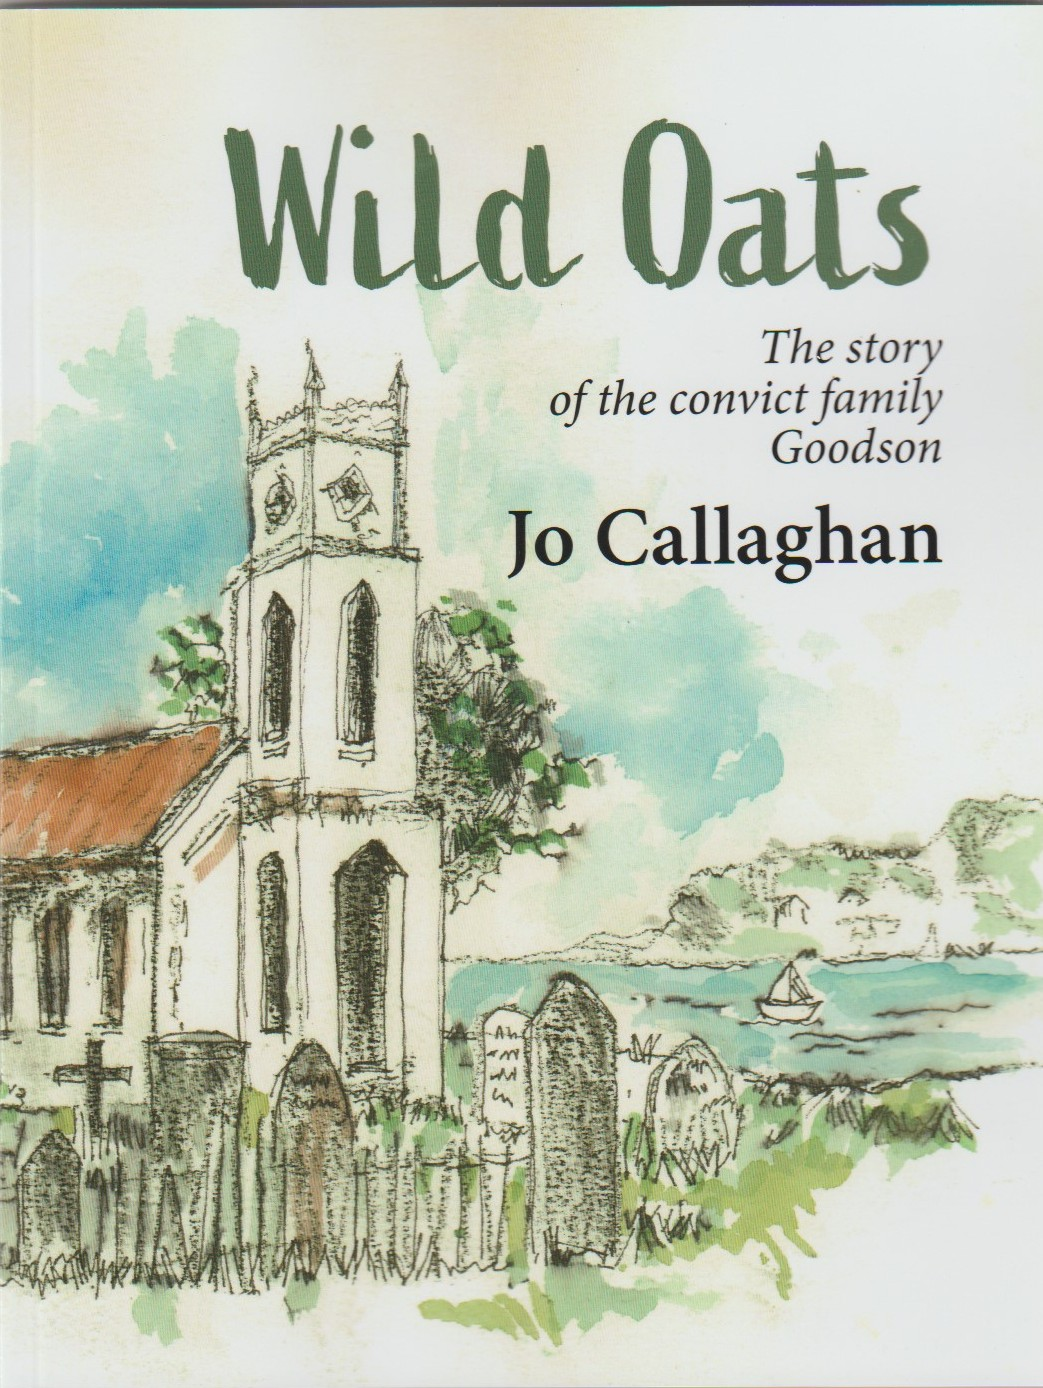 Wild Oats - the convict family Goodson